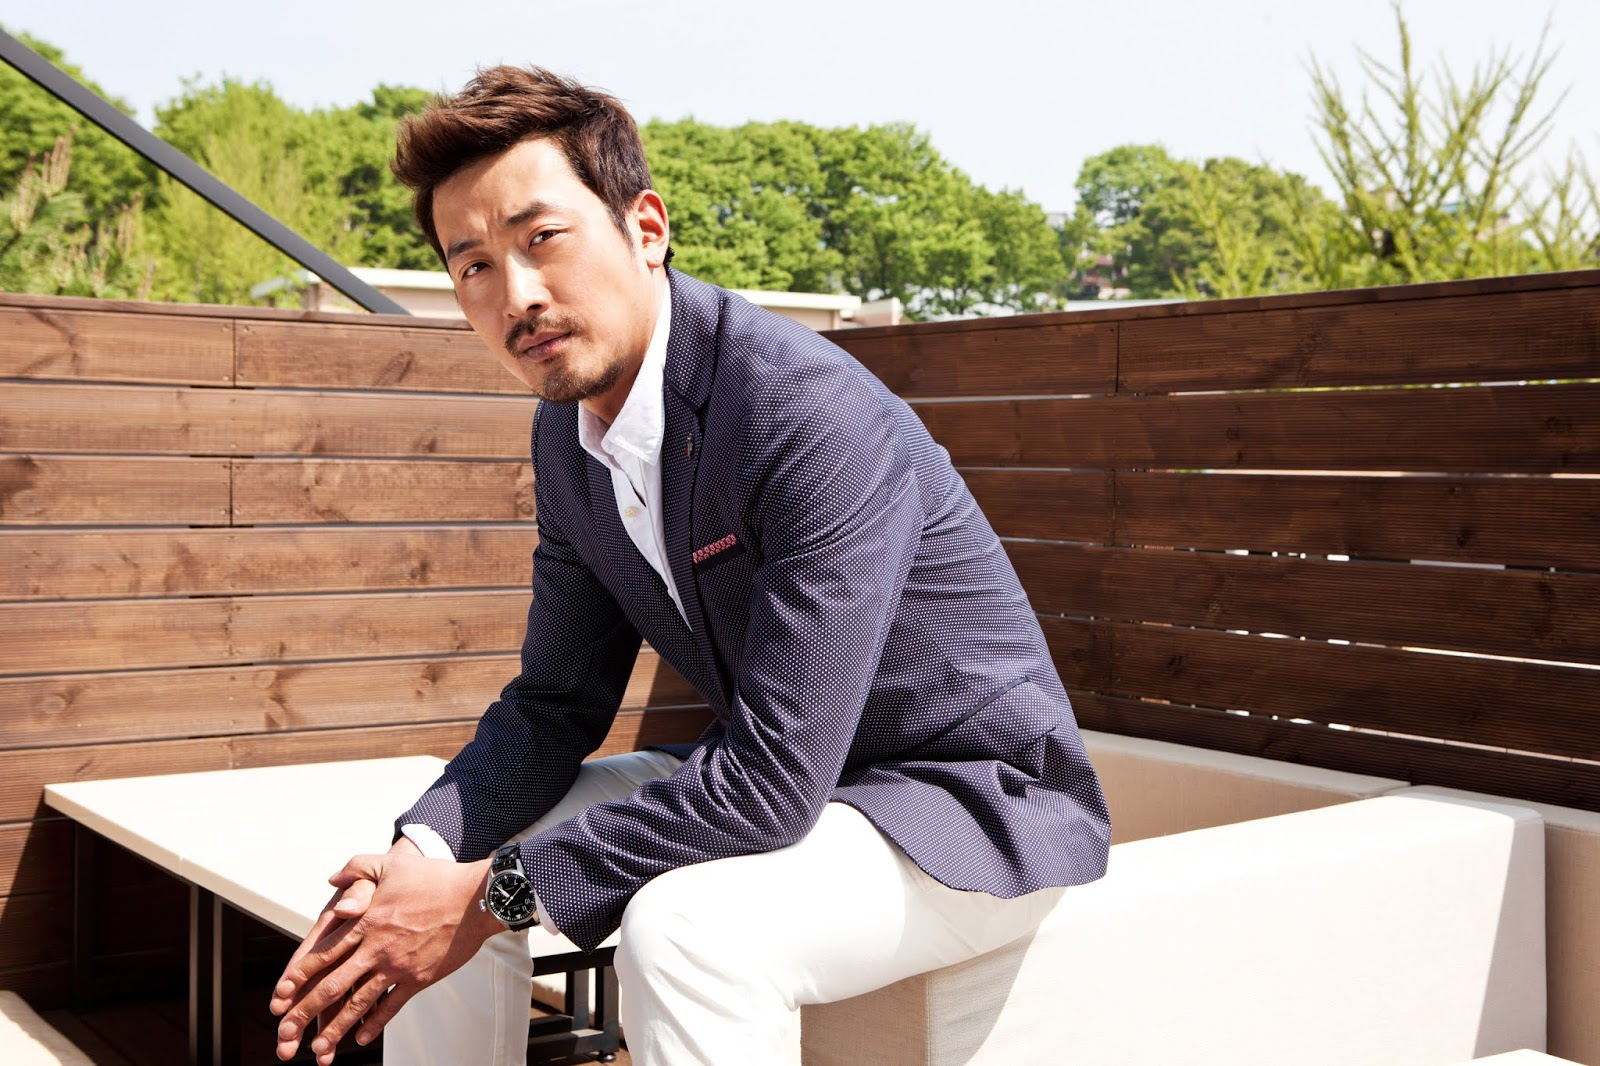 Revealed, Ha Jung Woo Was The Actor Who Was Caught Using Propofol By Using His Brother's Name